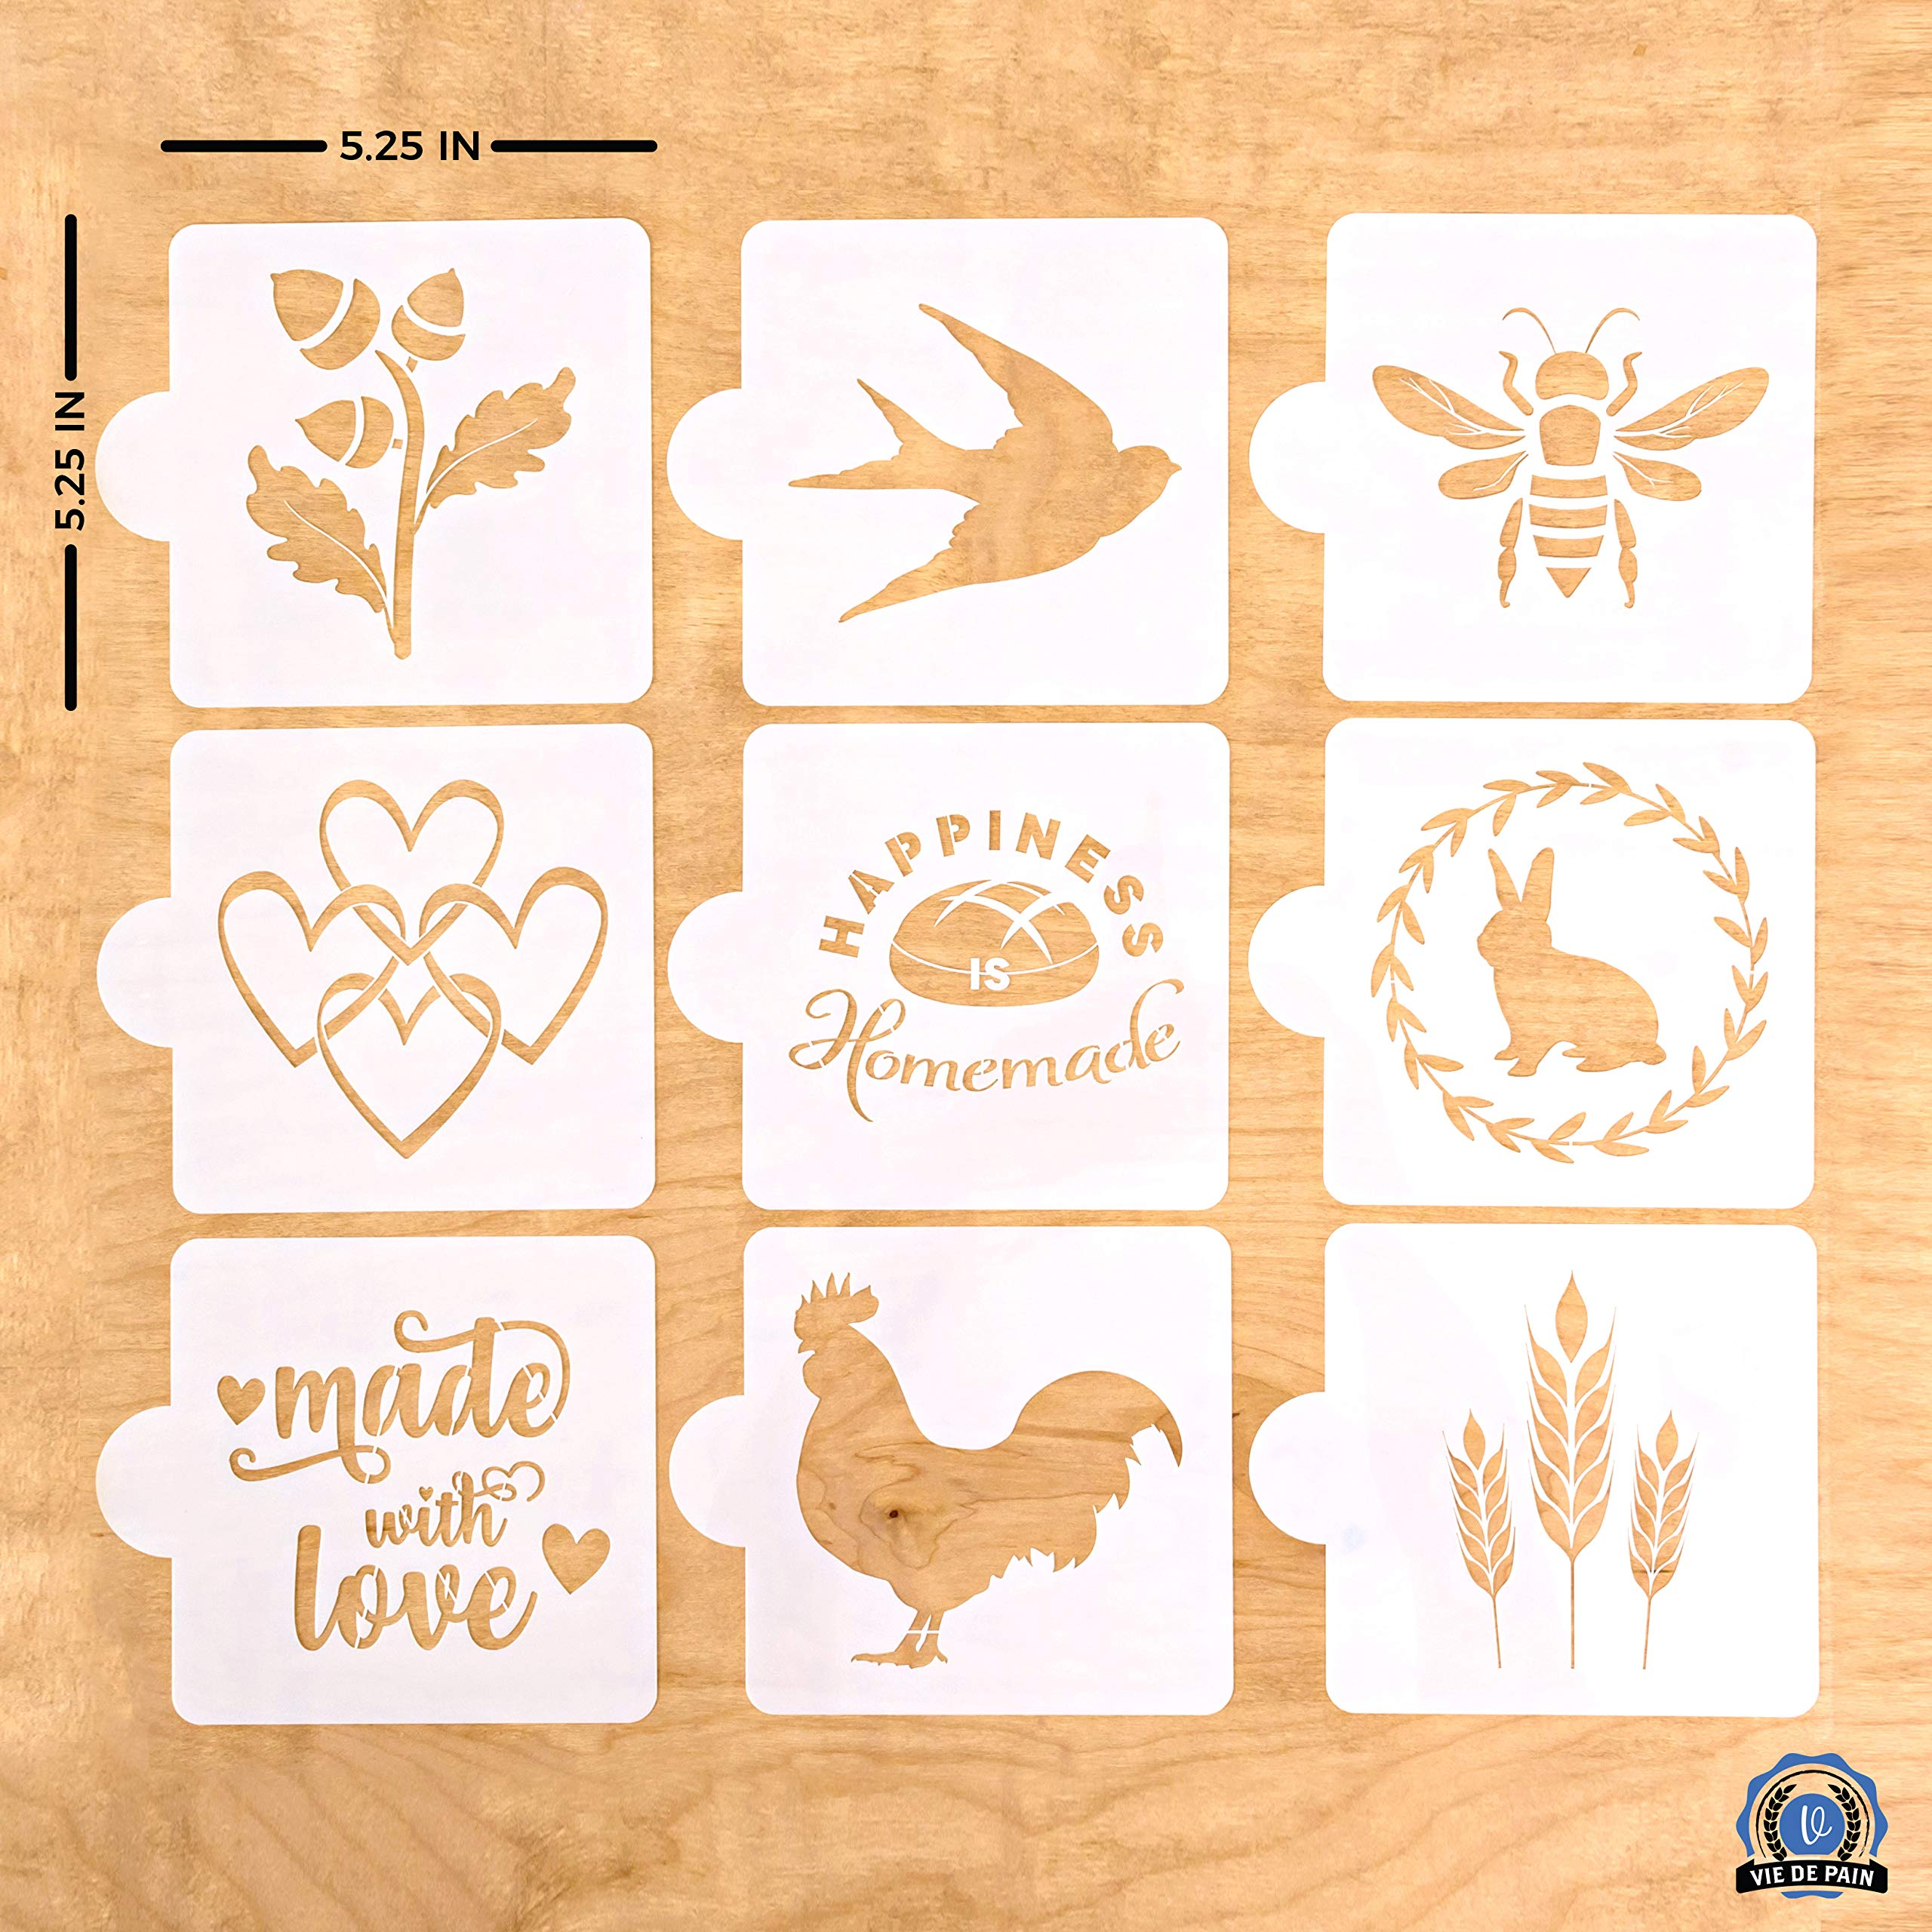 Vie De Pain European Artisan Bread Stencils (Set of 9) - Perfect for Decorating & Baking Bread Loaves, Cakes, Pies or Cookies- 5.25 x 5.25 In. by Vie De Pain V